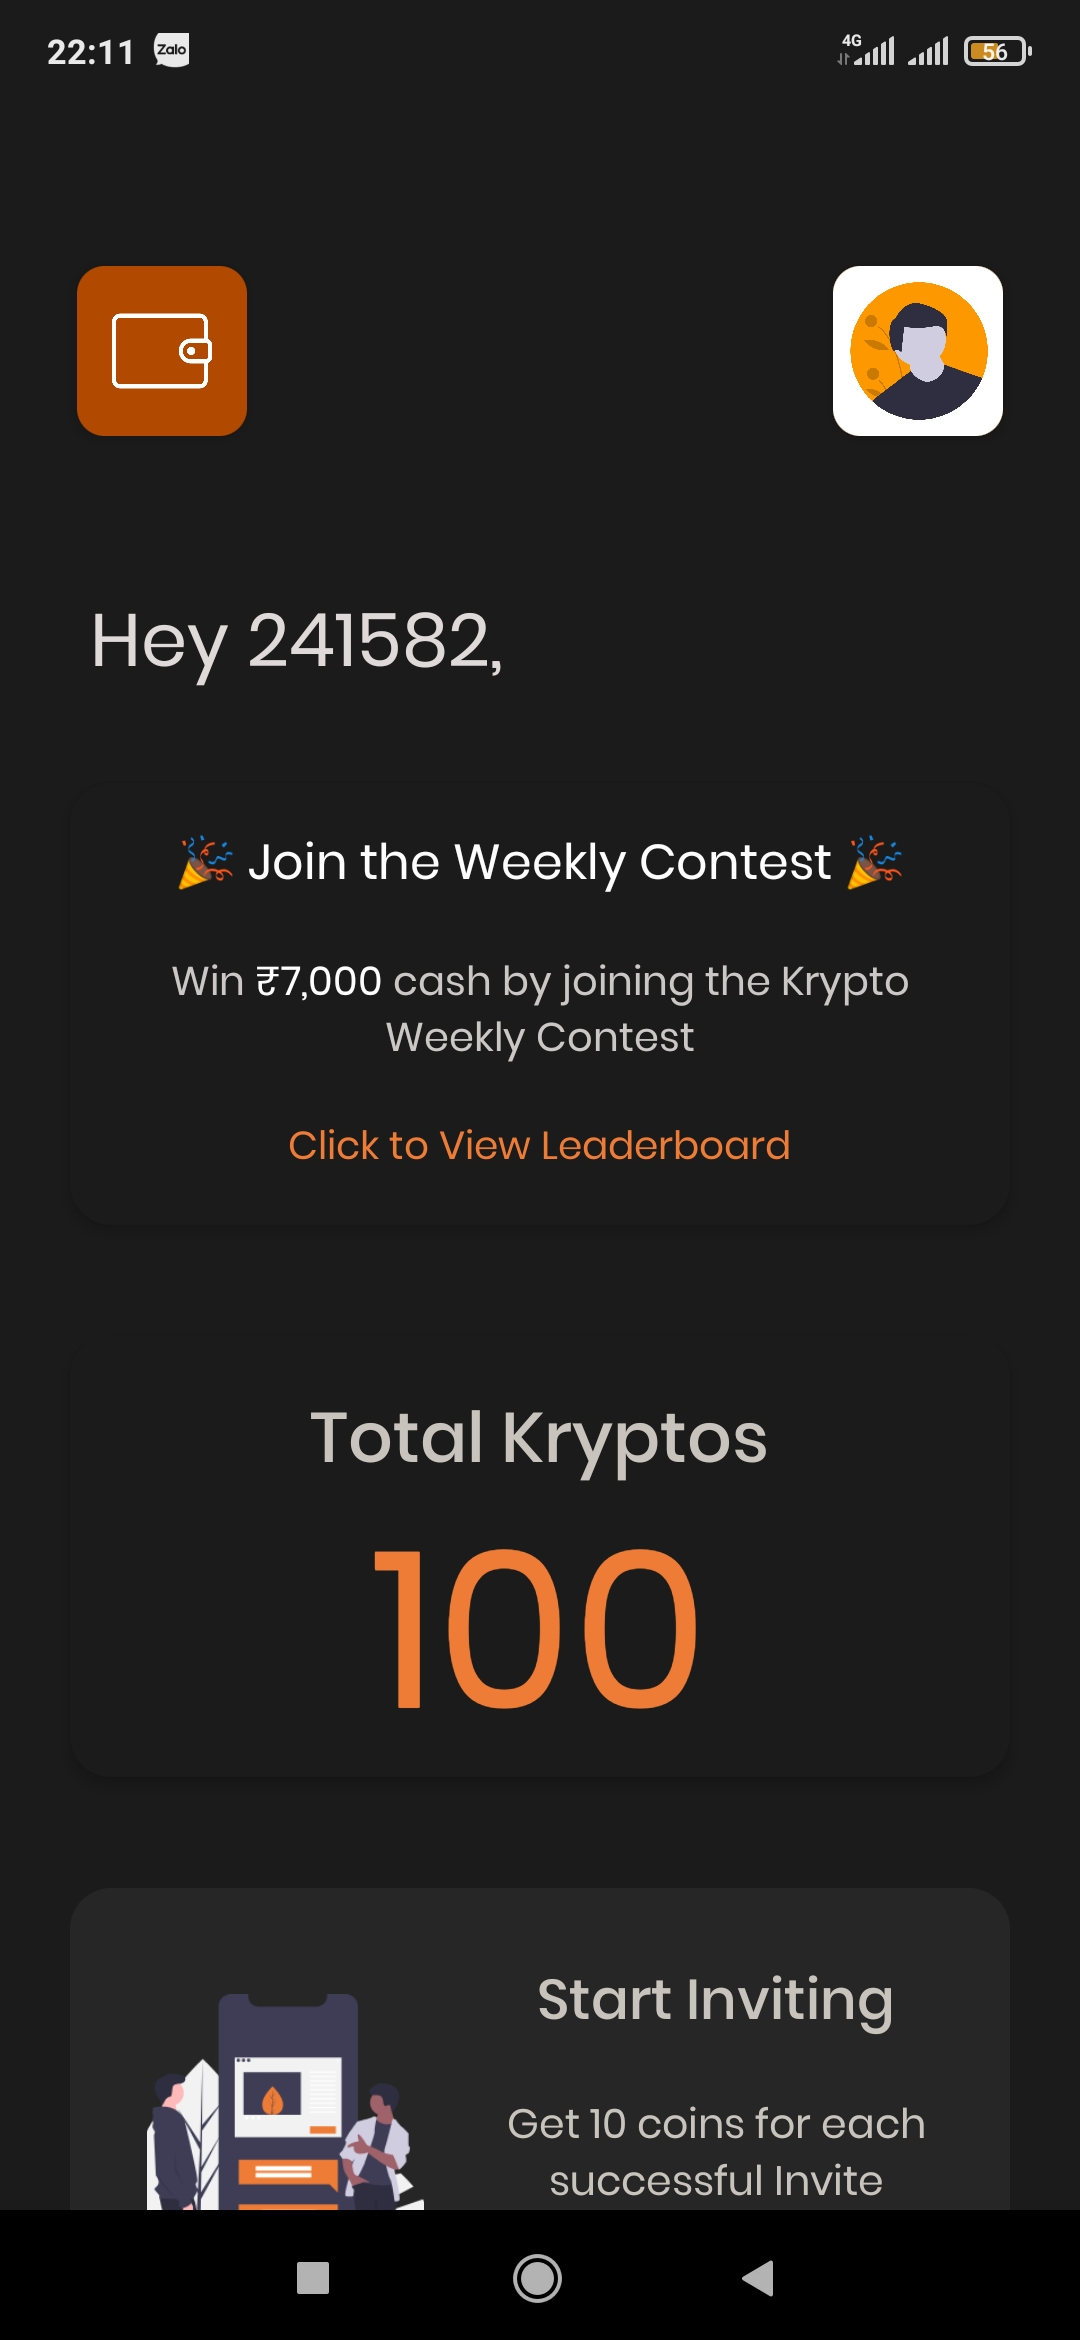 Screenshot_2020-10-04-22-11-55-022_com.krypto.jpg